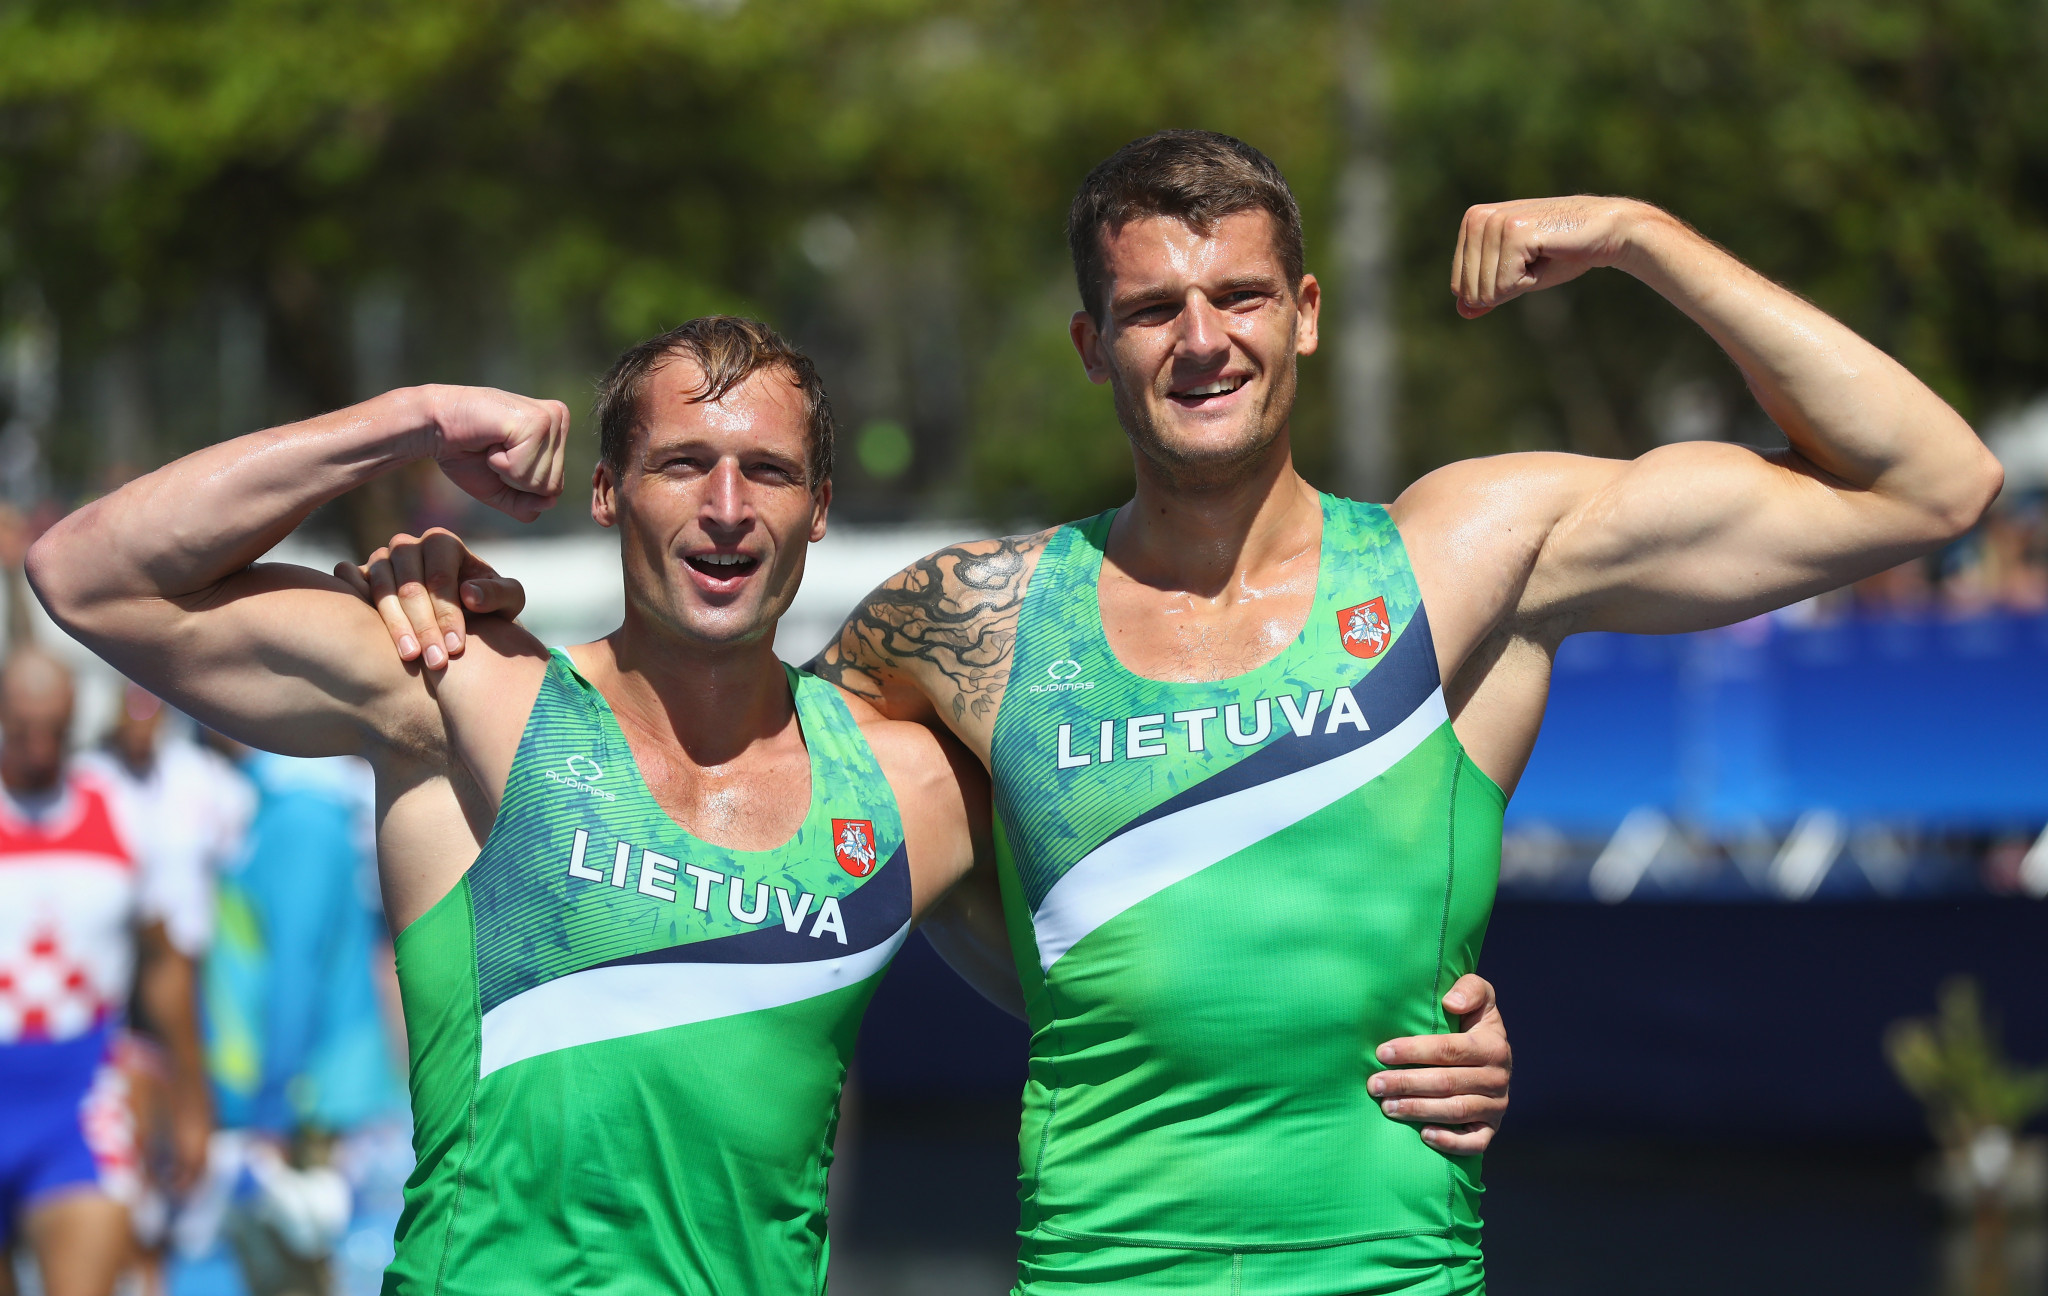 Olympic silver medallists Saulius Ritter and Mindaugas Griskonis made it through their heat in the men's double sculls ©Getty Images